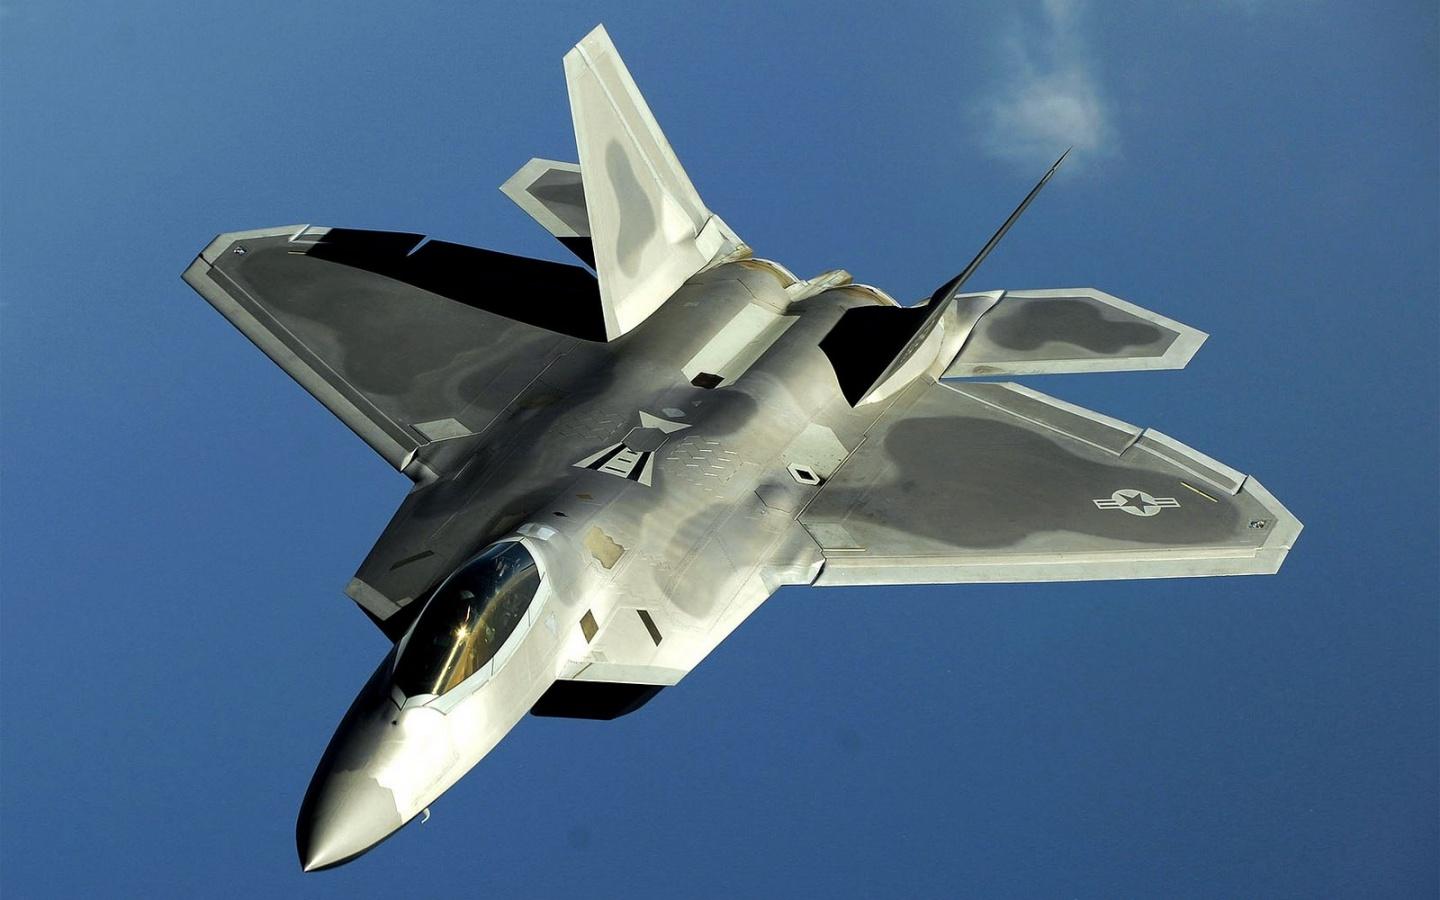 F22 Raptor on Blue Sky HD Wallpaper   HD Wallpaper HD Wallpaper 1440x900